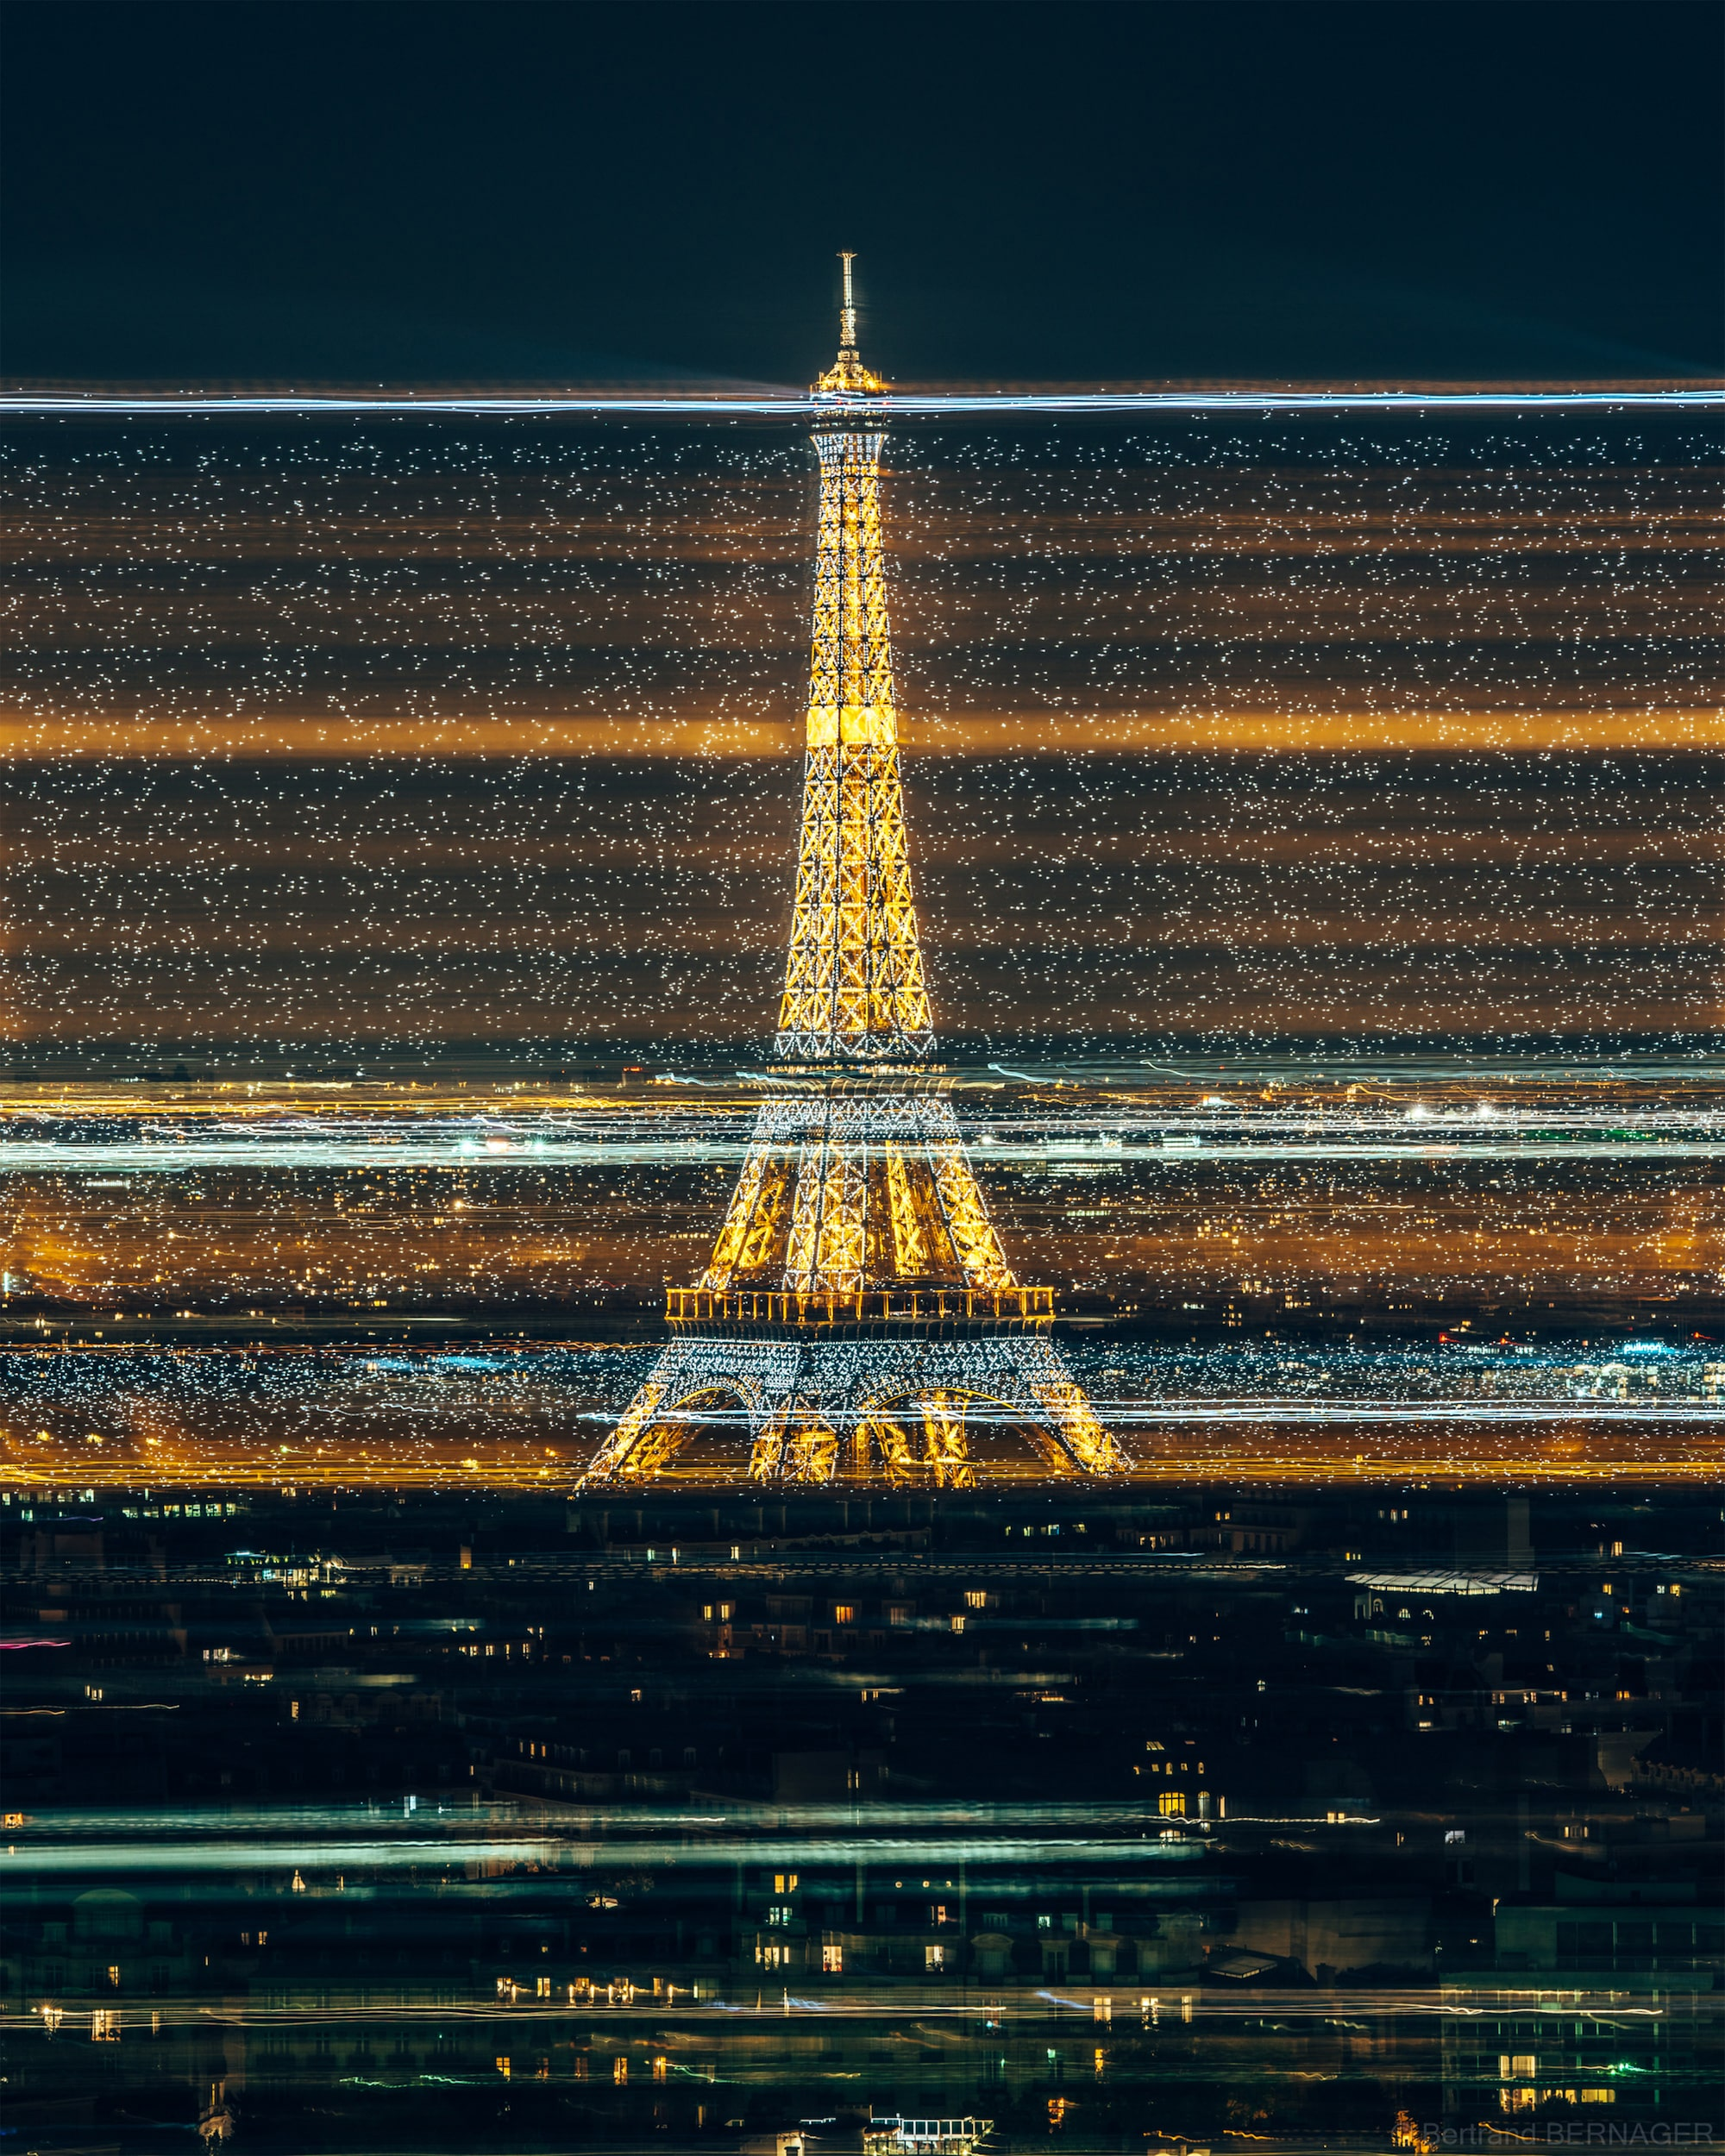 bertrand bernager sony alpha 7RM3 long exposure shot of the eiffel tower showing cars passing through the scene